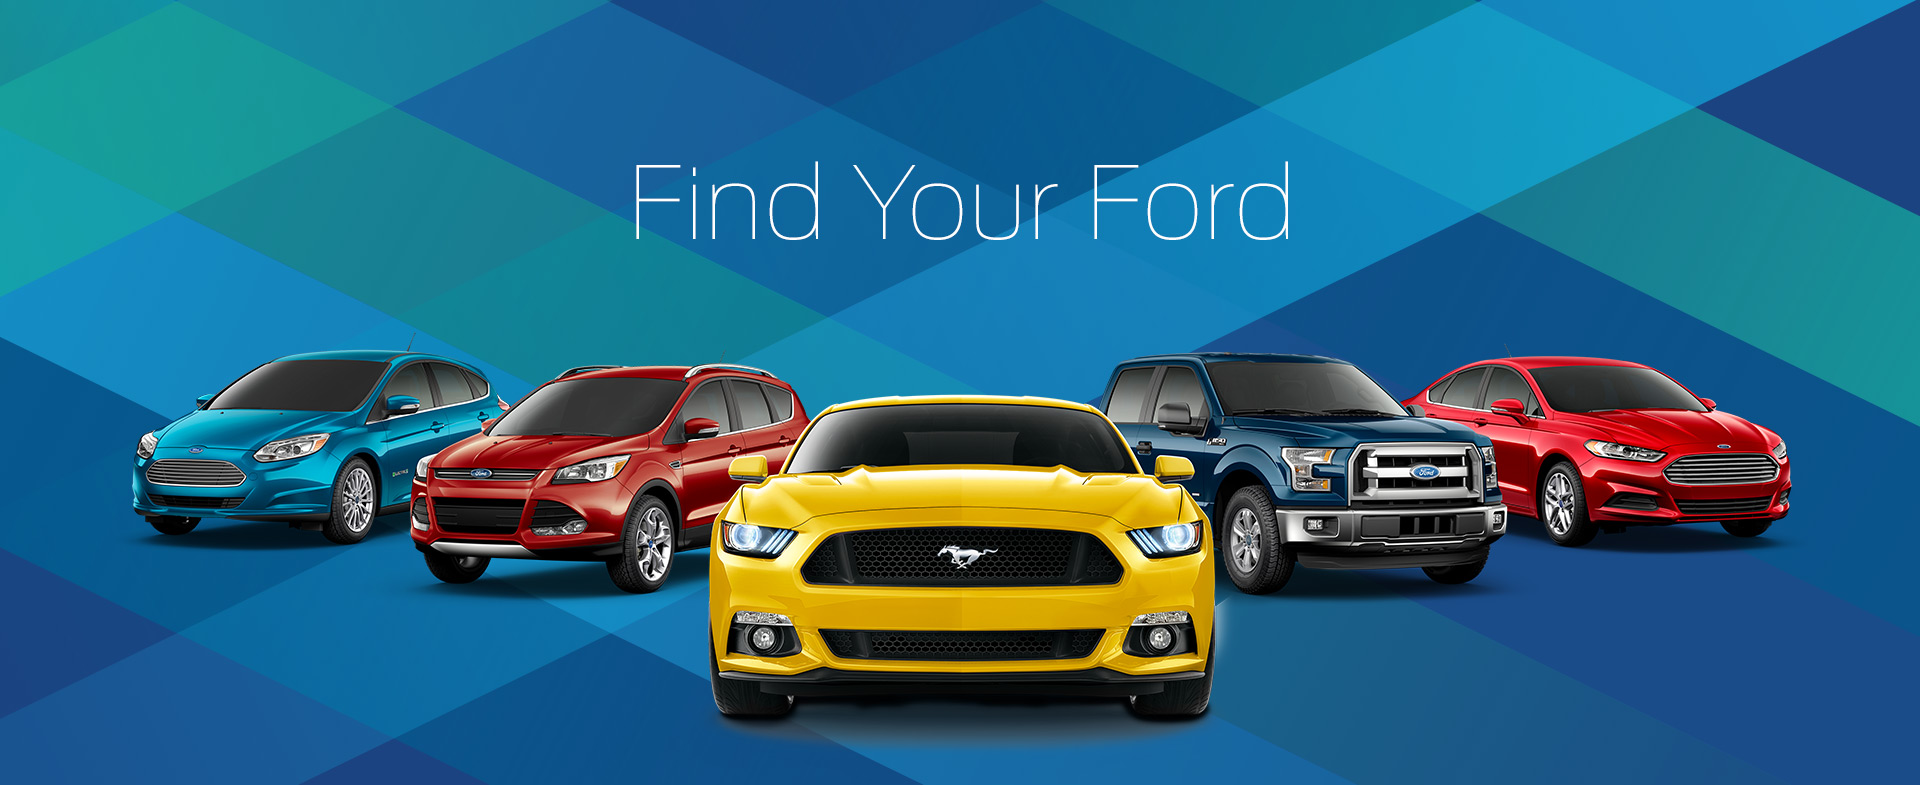 Find Your Ford